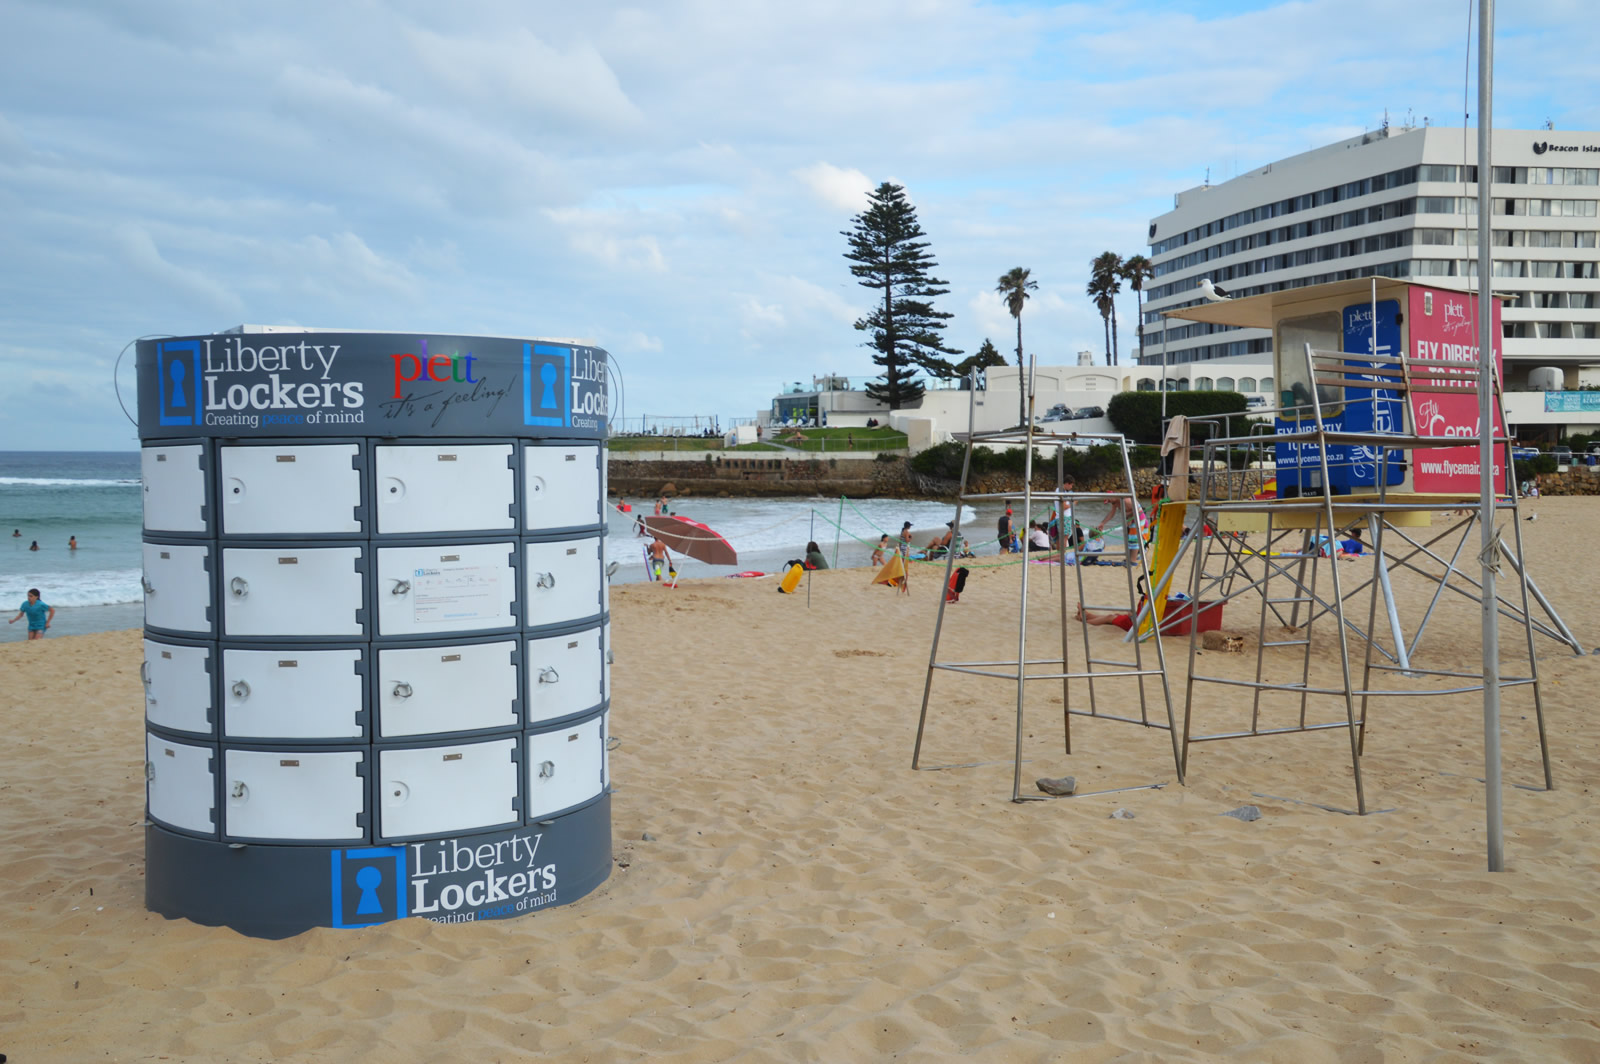 Liberty lockers - Beach lockers to store your valuables at the beach when you swim